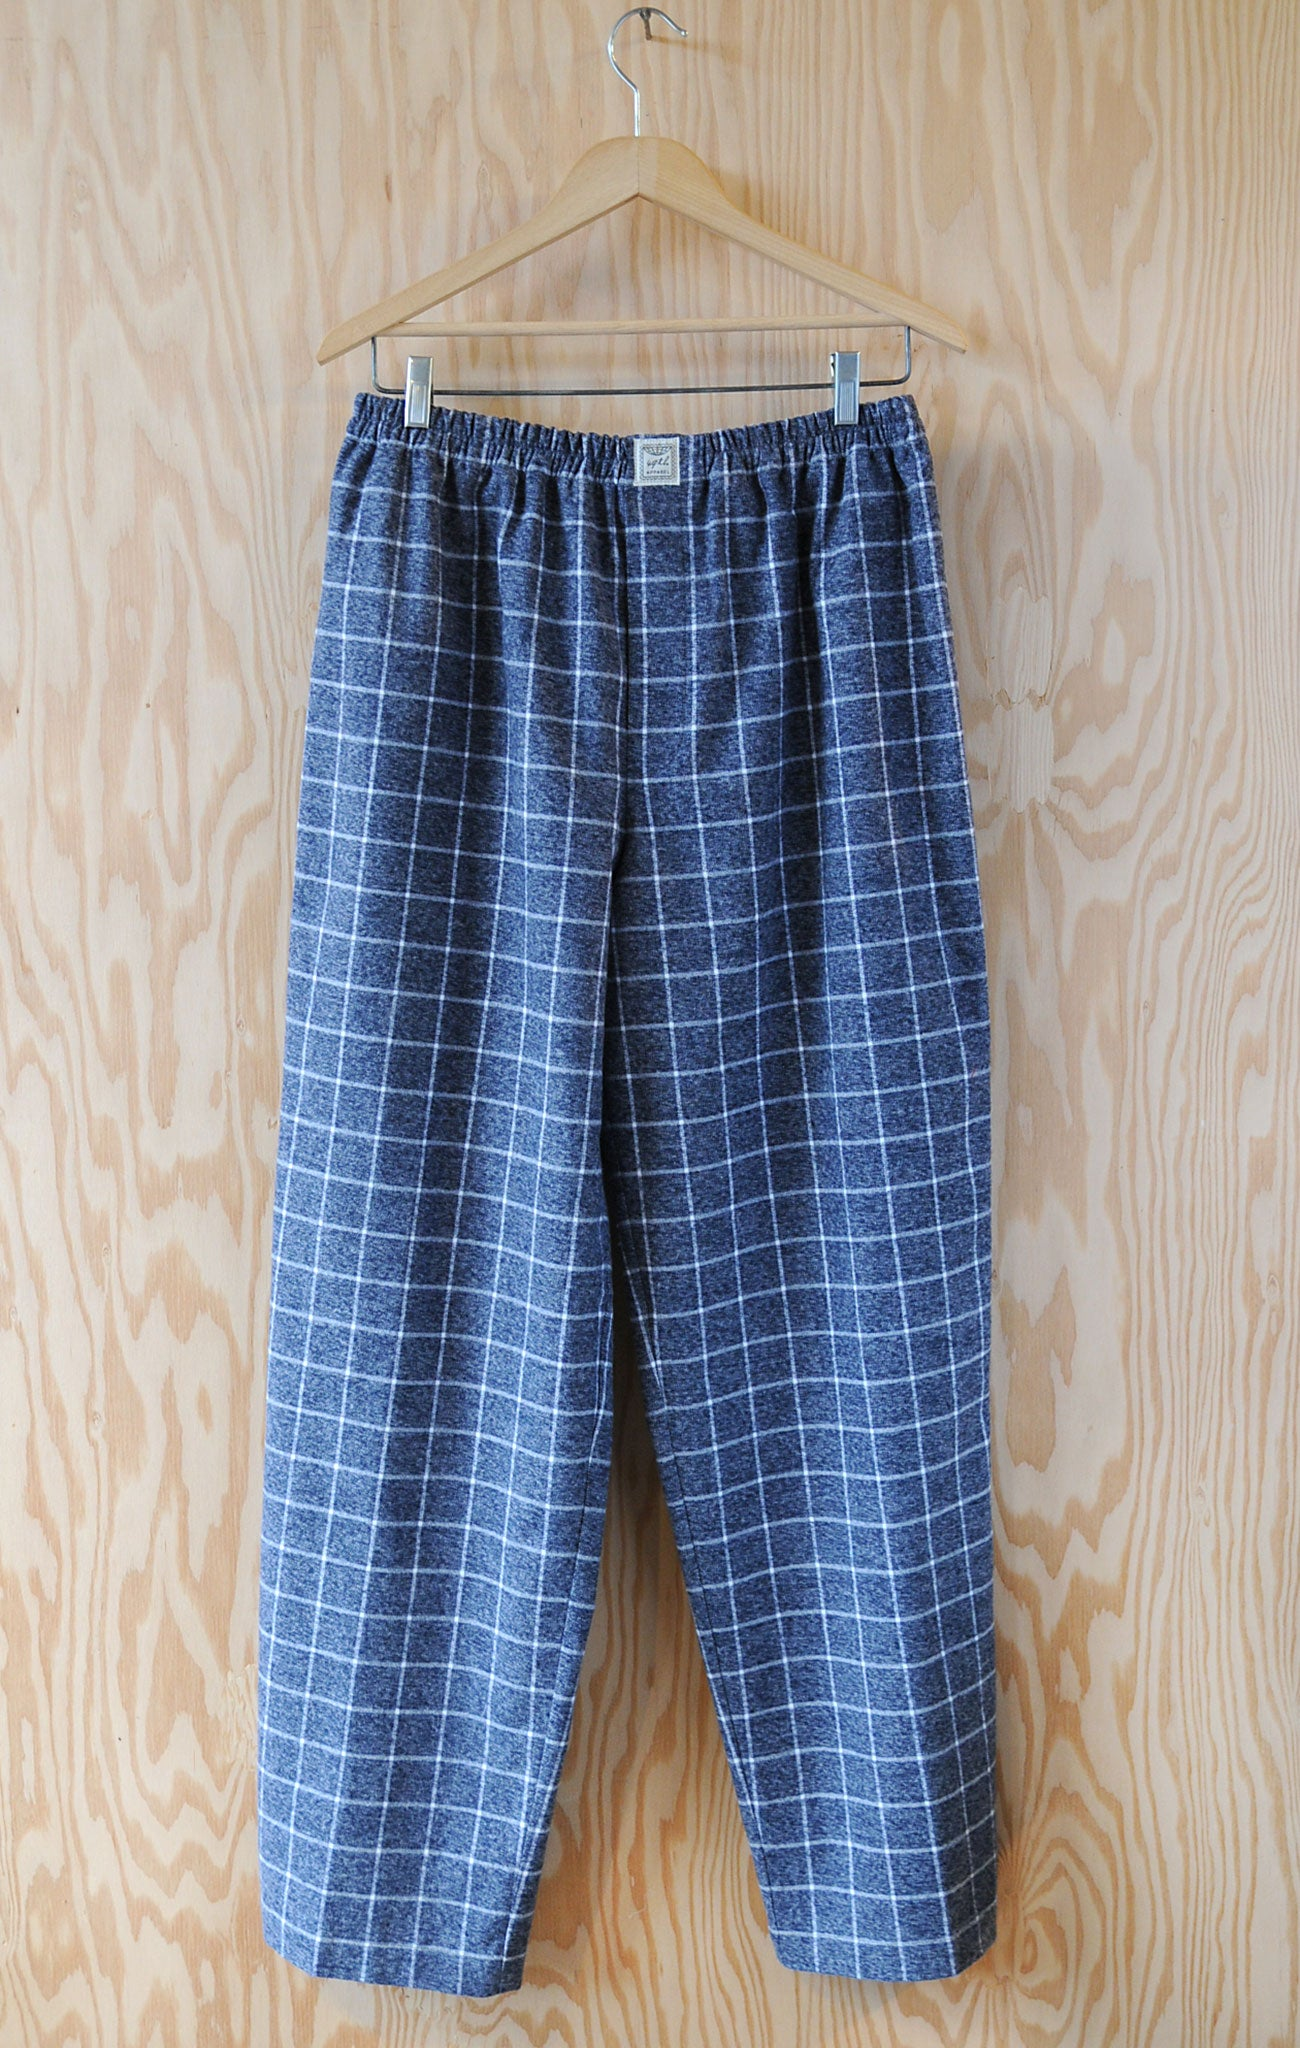 Men's Pajama Set - Window Pane Large Check Flannel